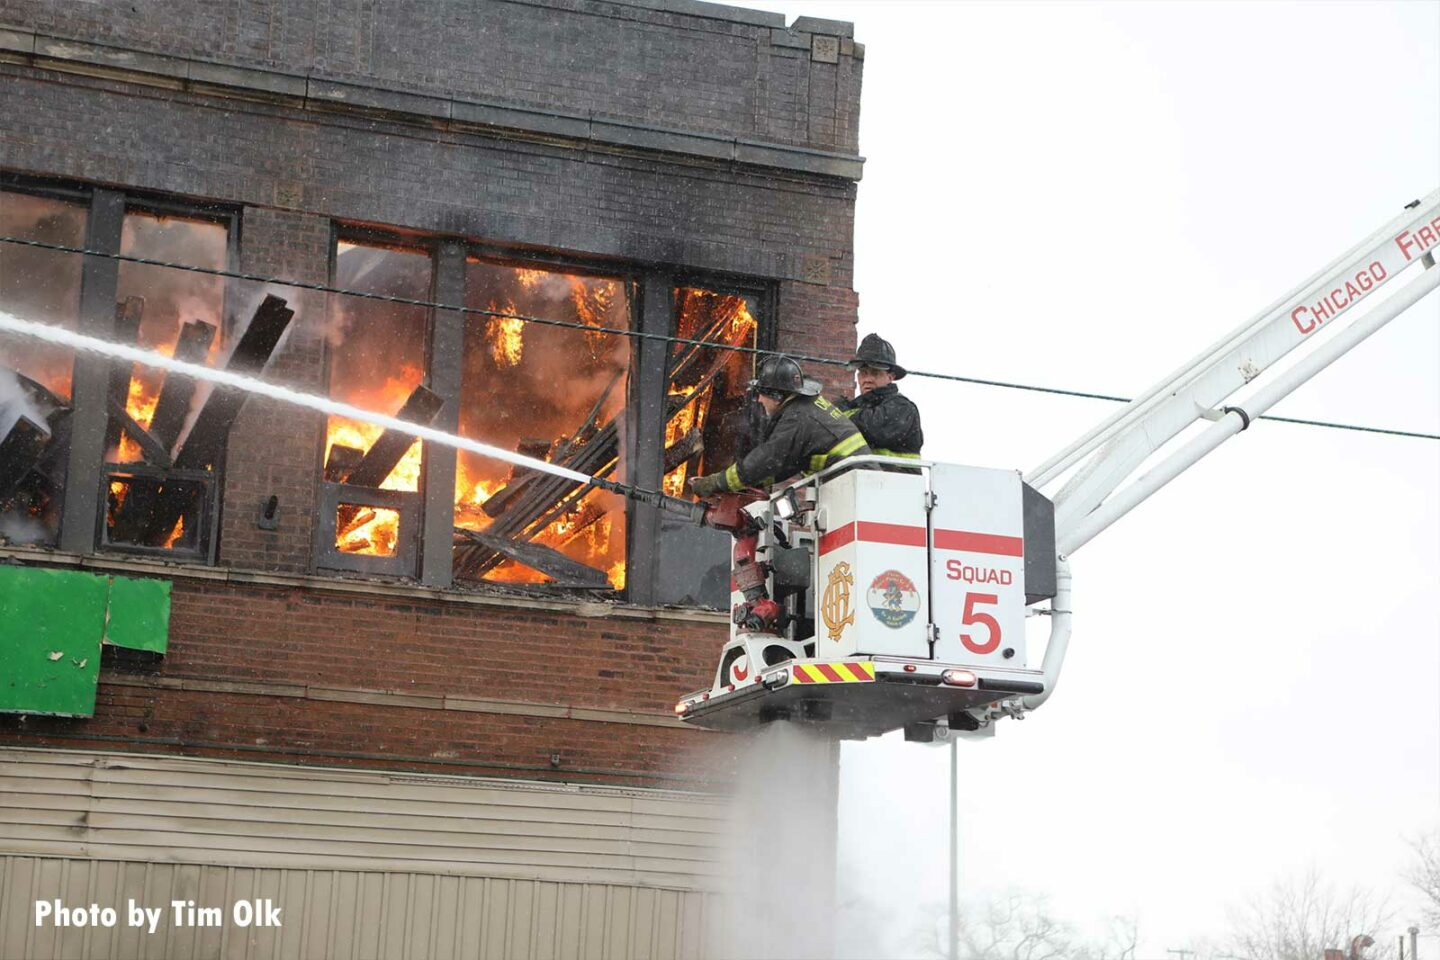 Firefighters in a bucket direct hose streams into the burning church building